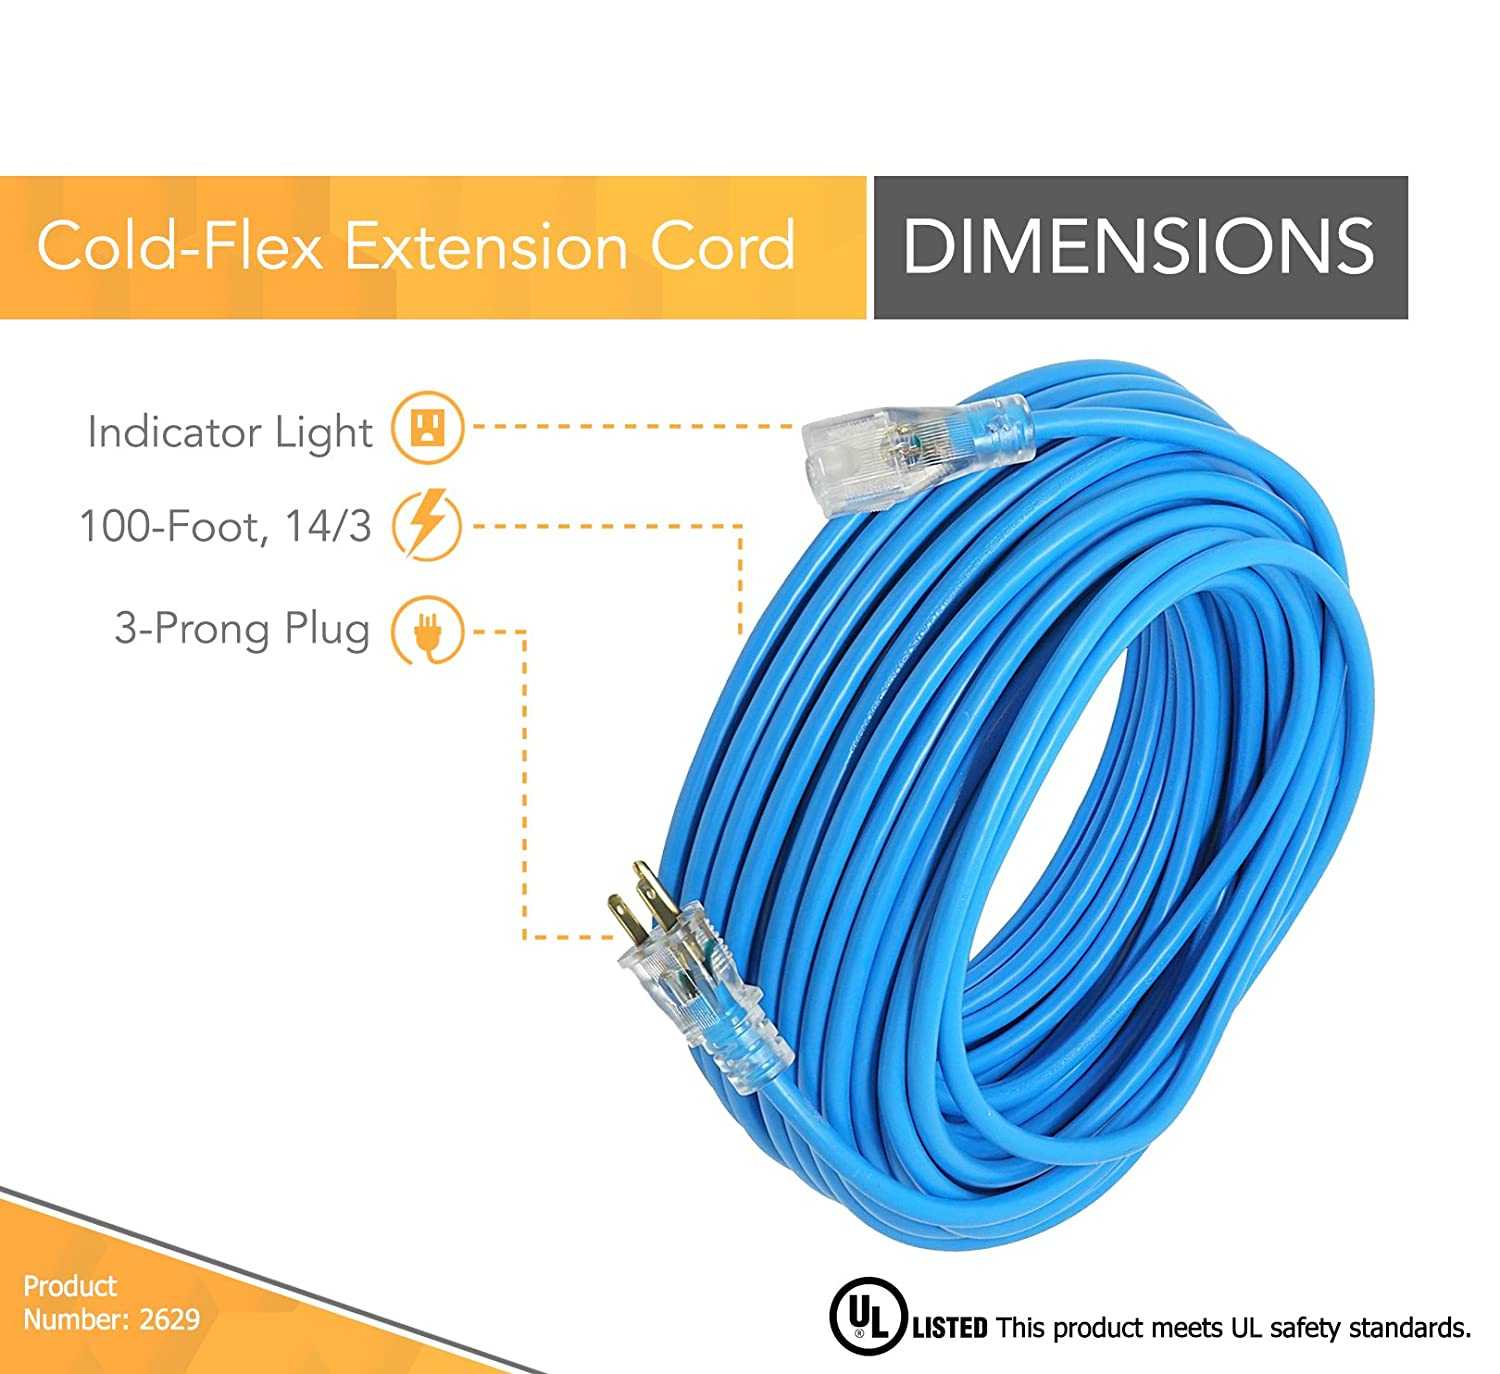 25 Feet, 14//3, Blue Coleman Cable 2627 Outdoor Extension Cord with Lighted Ends Made of Cold-Flex Weather-Proof Material